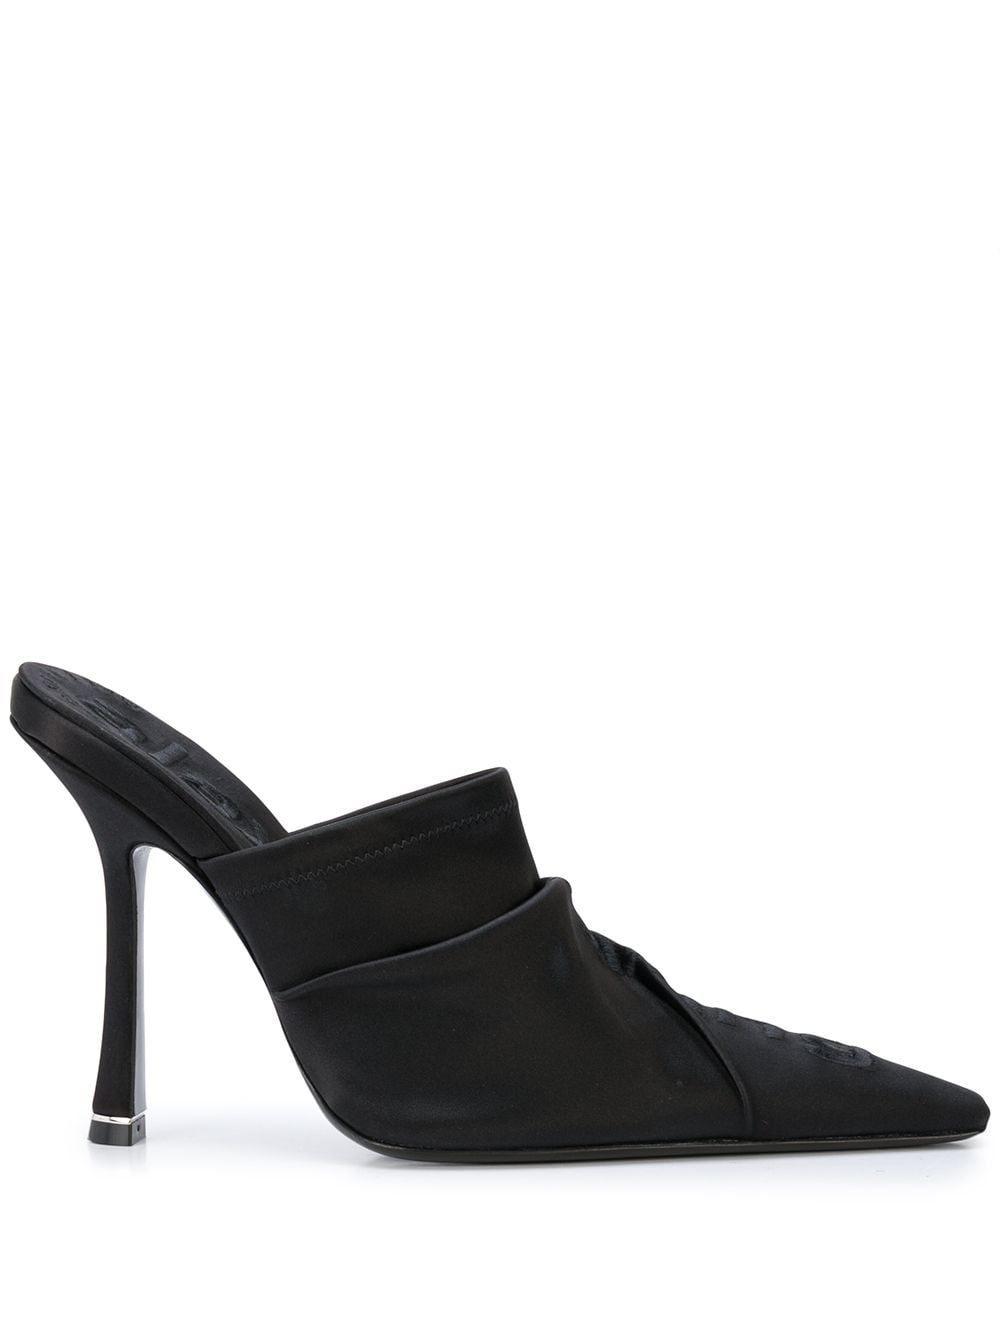 ALEXANDER WANG WOMEN VANNA MULE BLACK SATIN